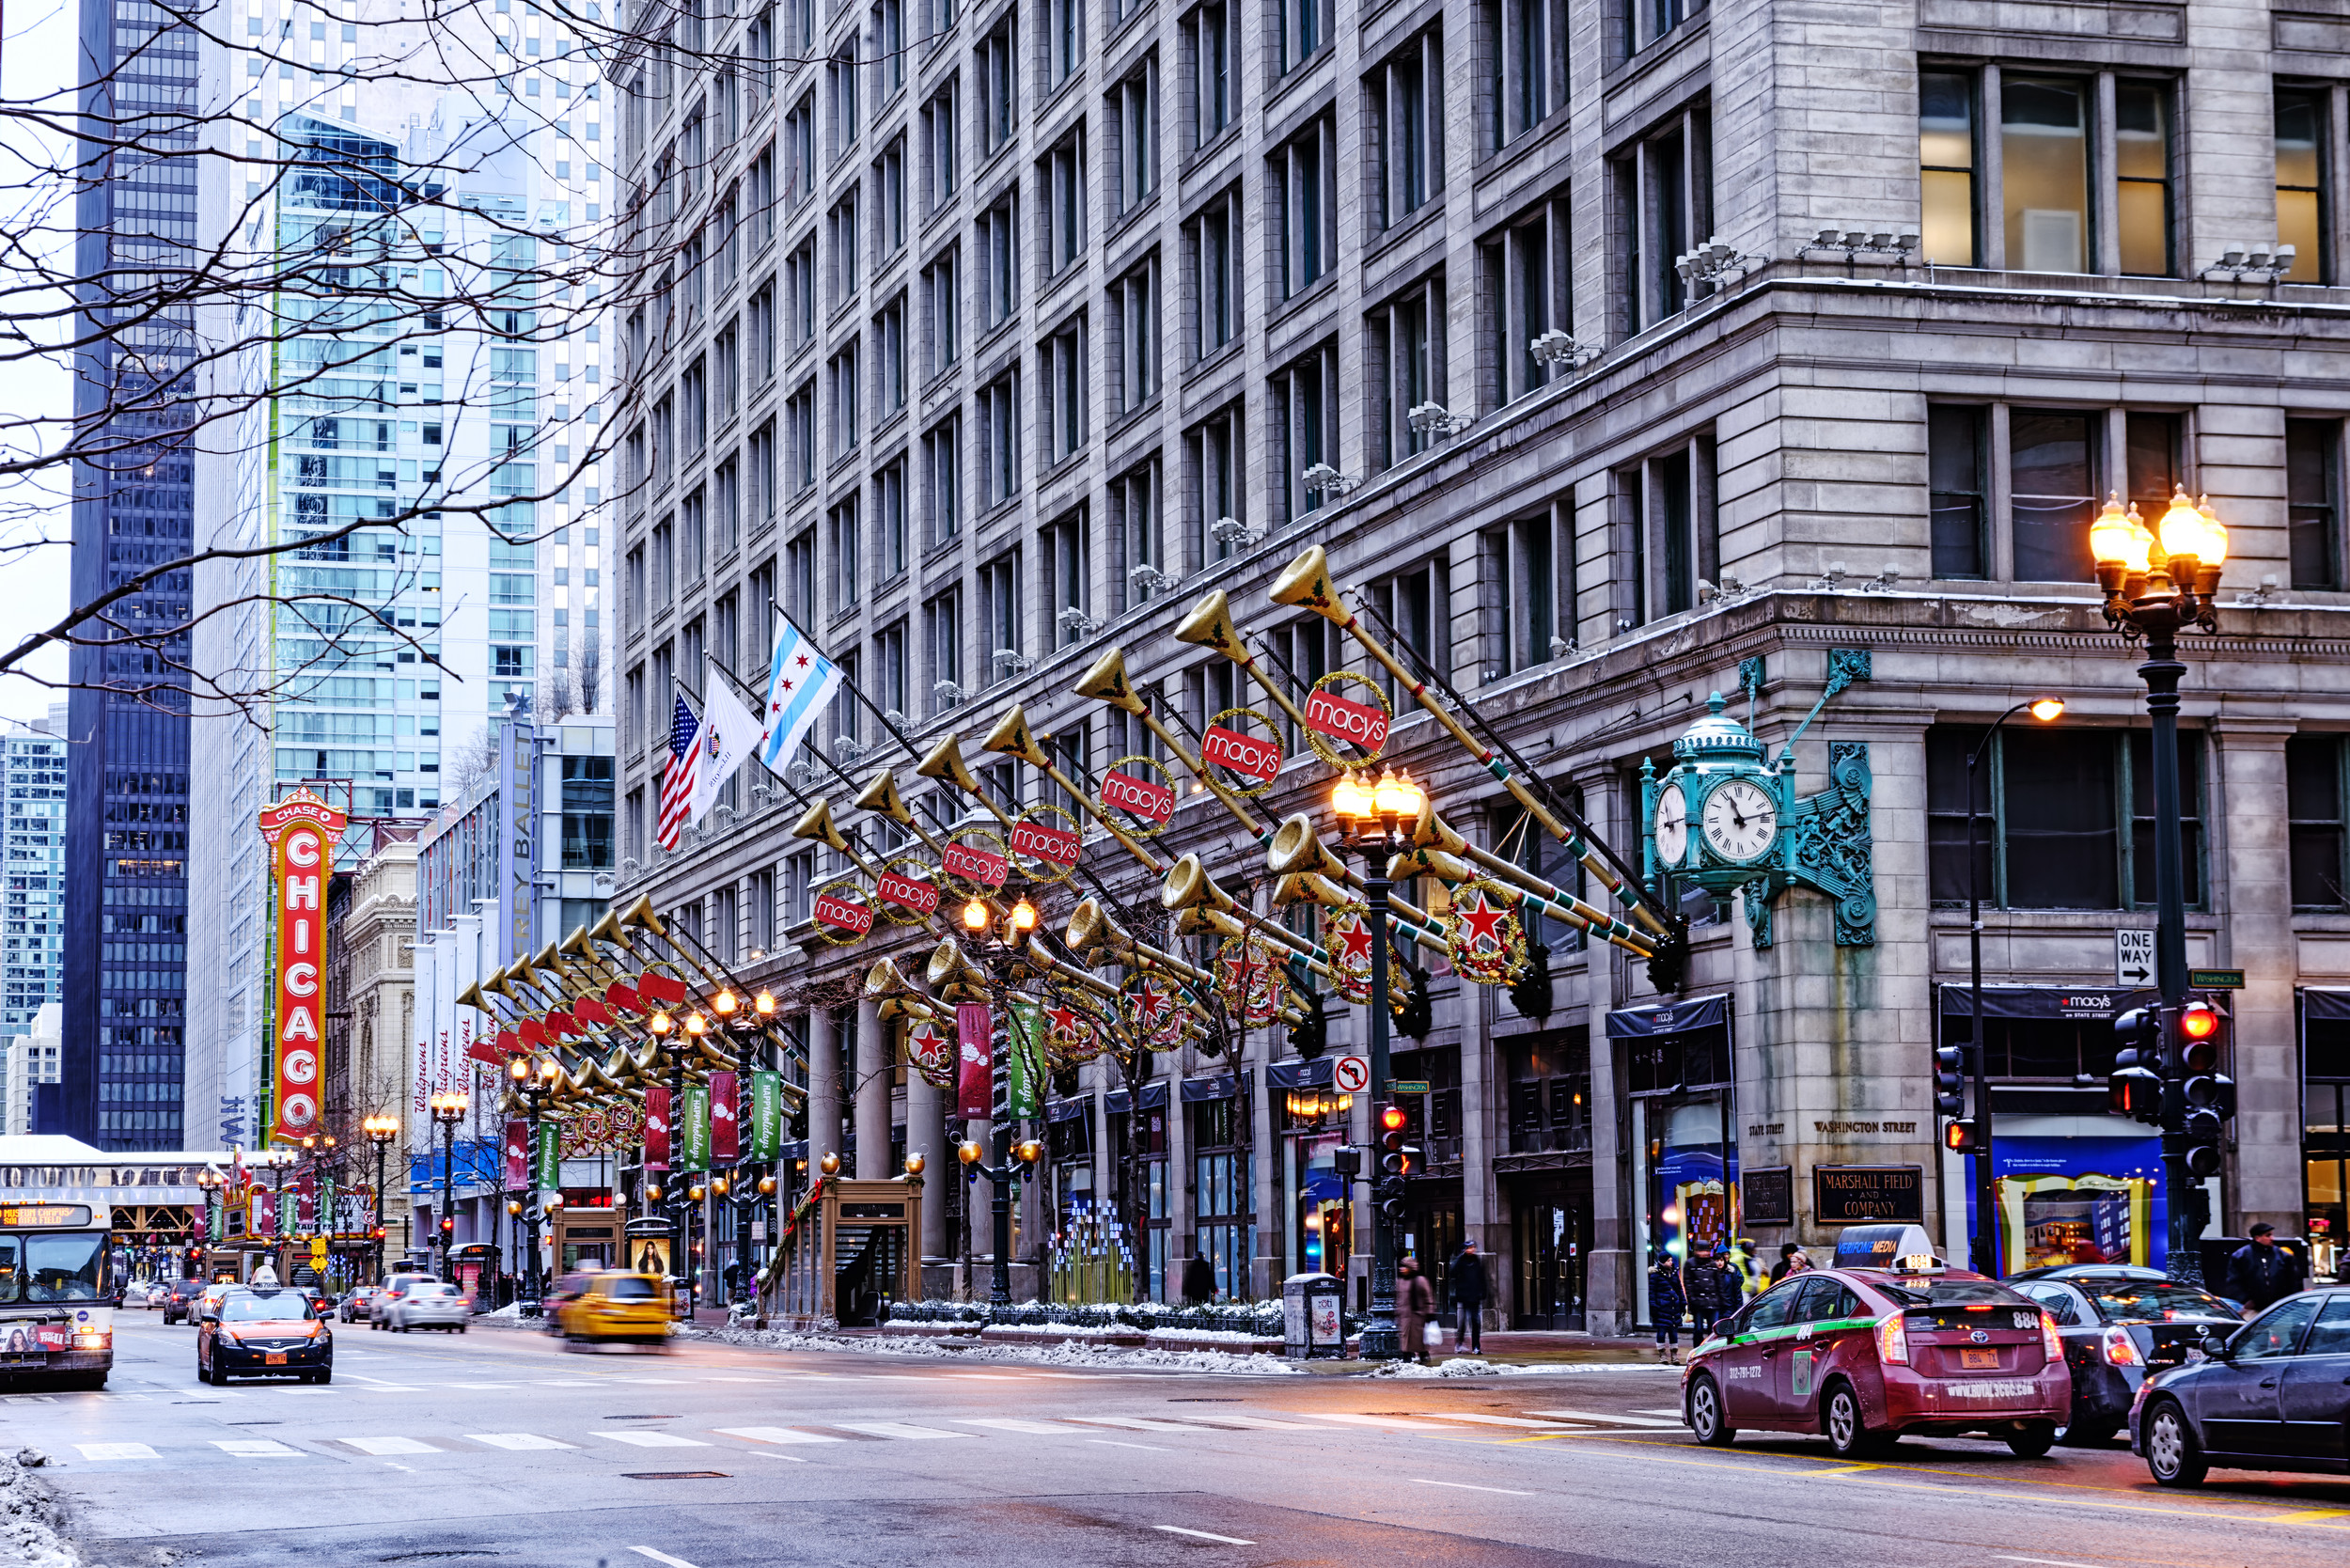 Spending the holiday season in Chicago? Here's what to do